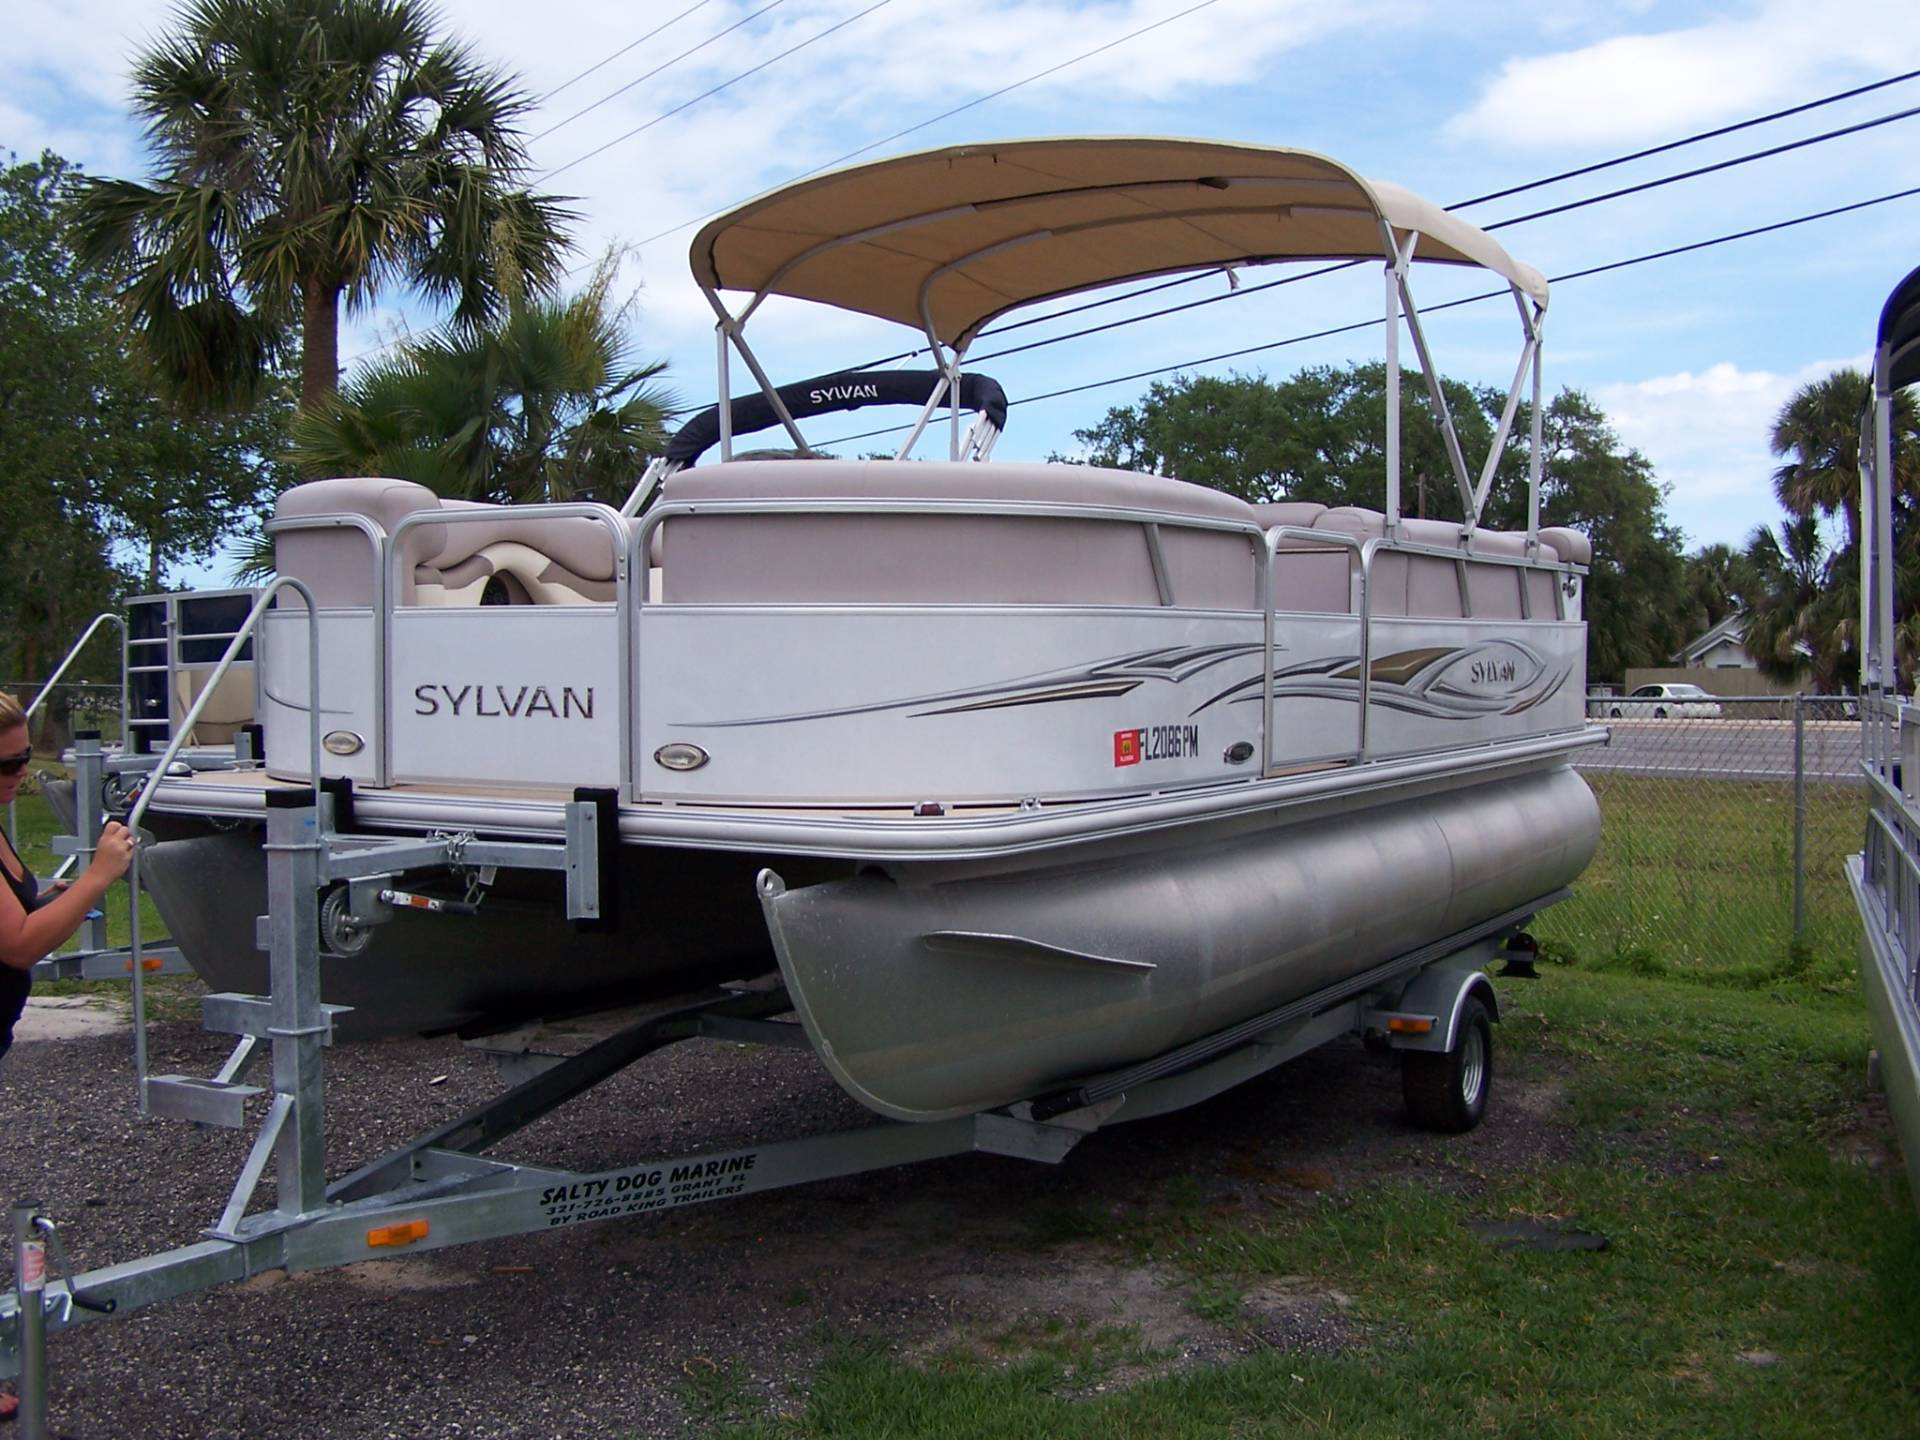 Used sylvan boats for sale 4 for Syvlan